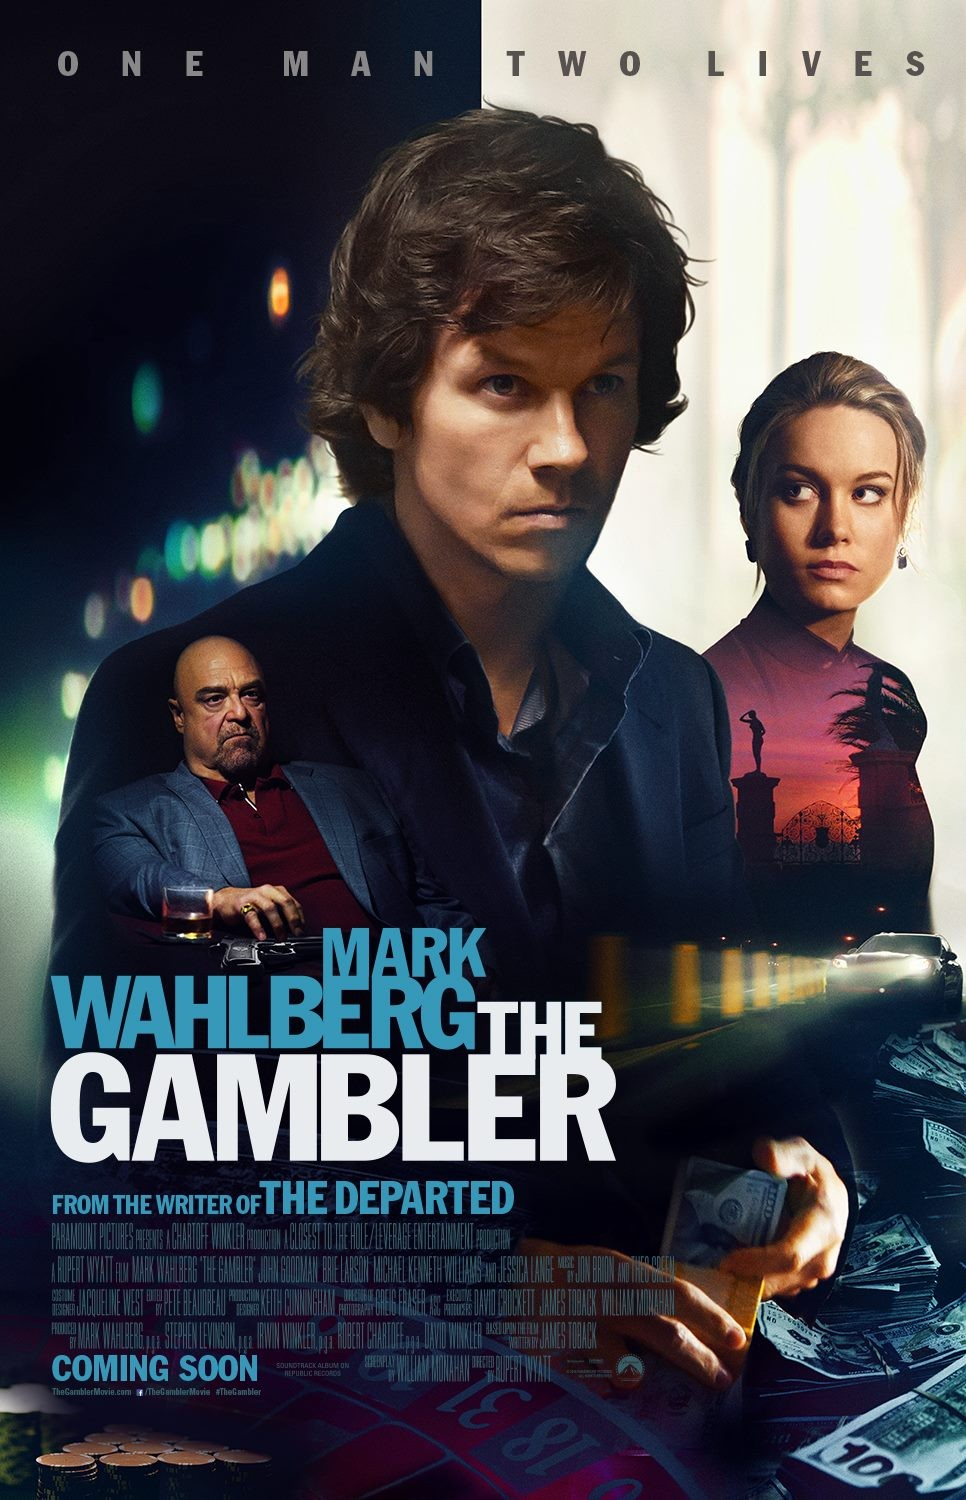 THE GAMBLER-Official Poster Banner XLG-12DEZEMBRO2014-02